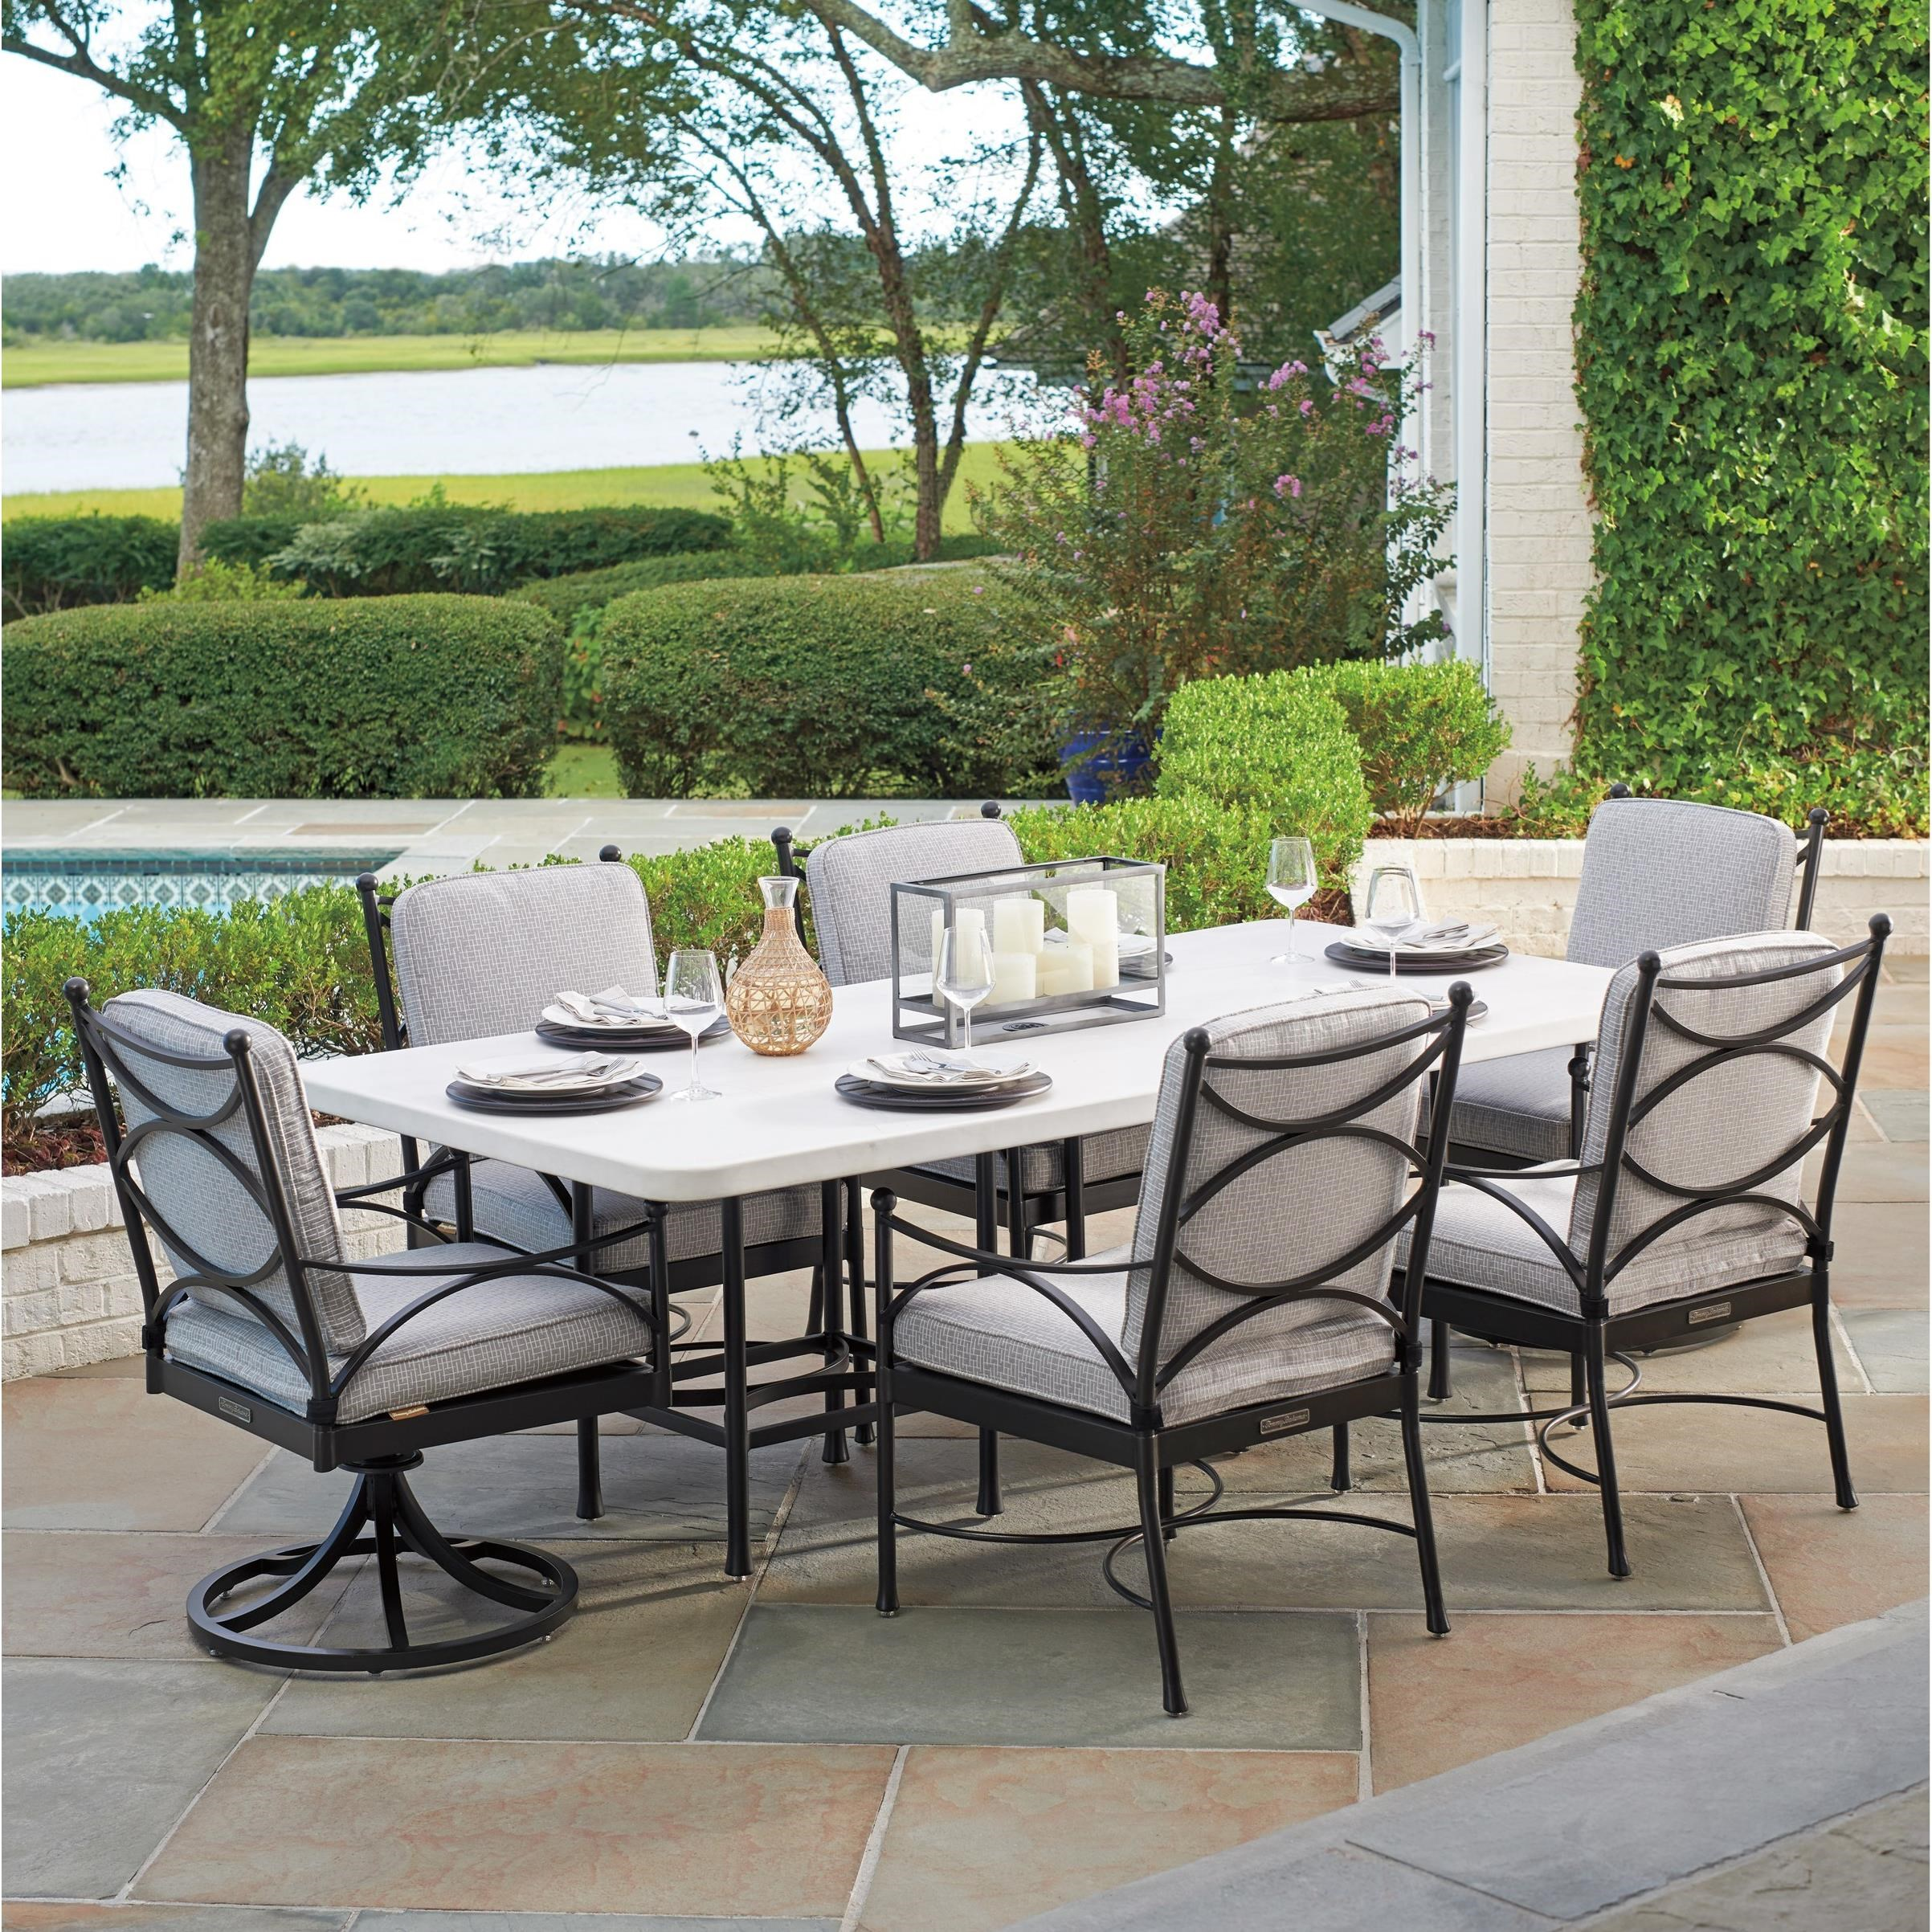 Pavlova 7 Piece Outdoor Dining Set by Tommy Bahama Outdoor Living at Jacksonville Furniture Mart